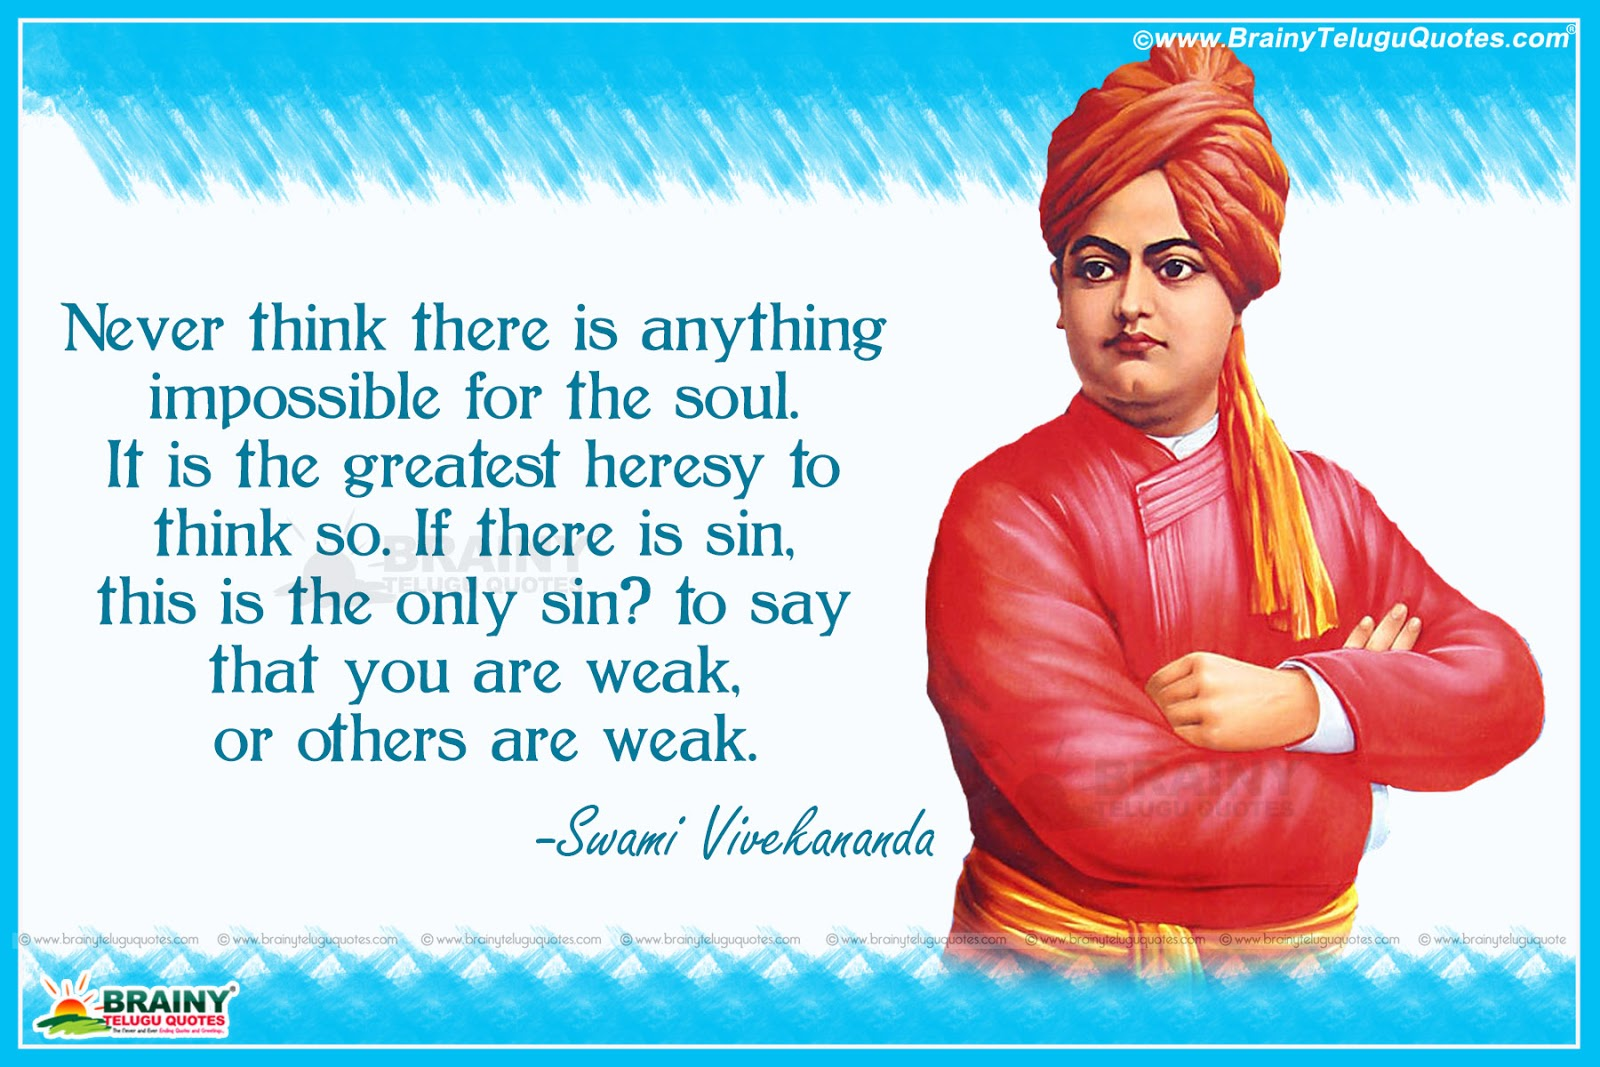 18 5 Quotes Of Swami Vivekananda Of Vivekananda Quotes Swami 5